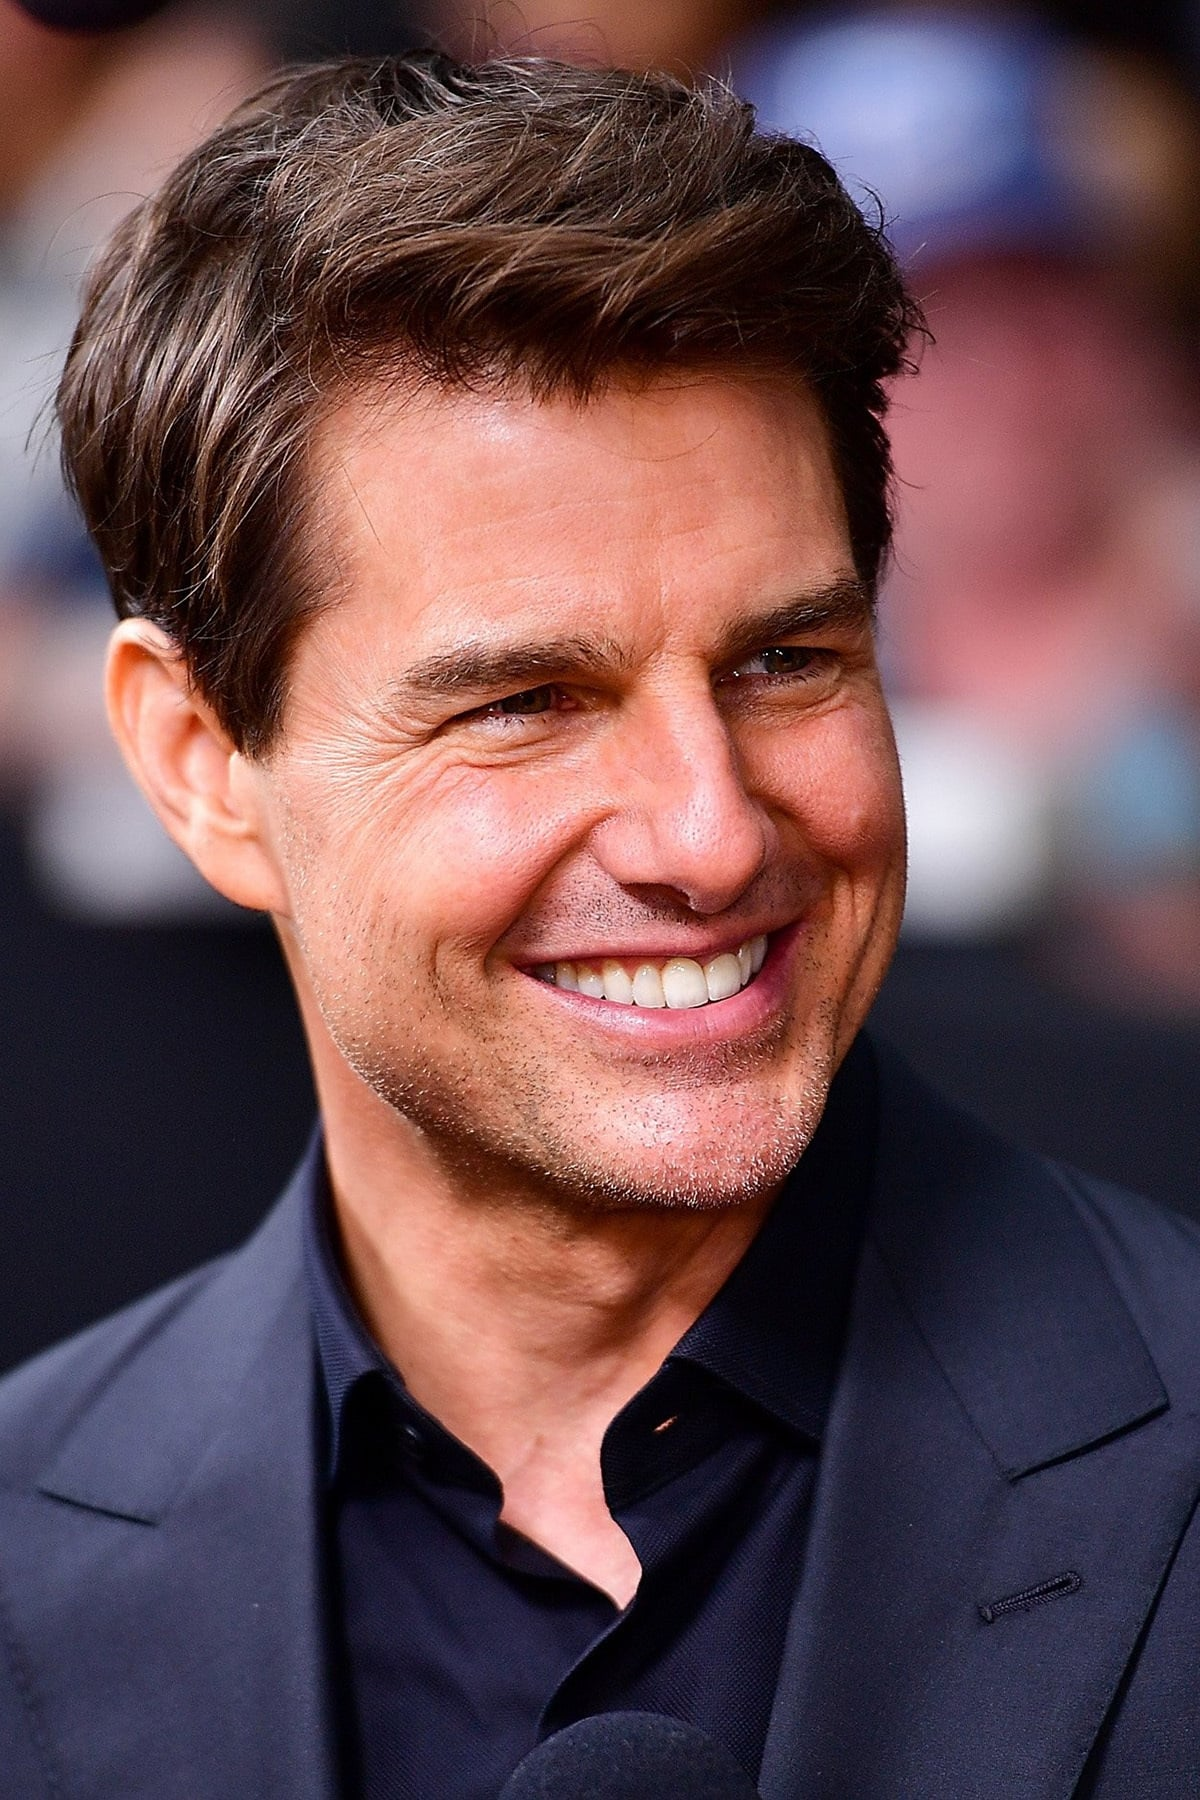 Tom Cruise - Profile Images — The Movie Database (TMDb)